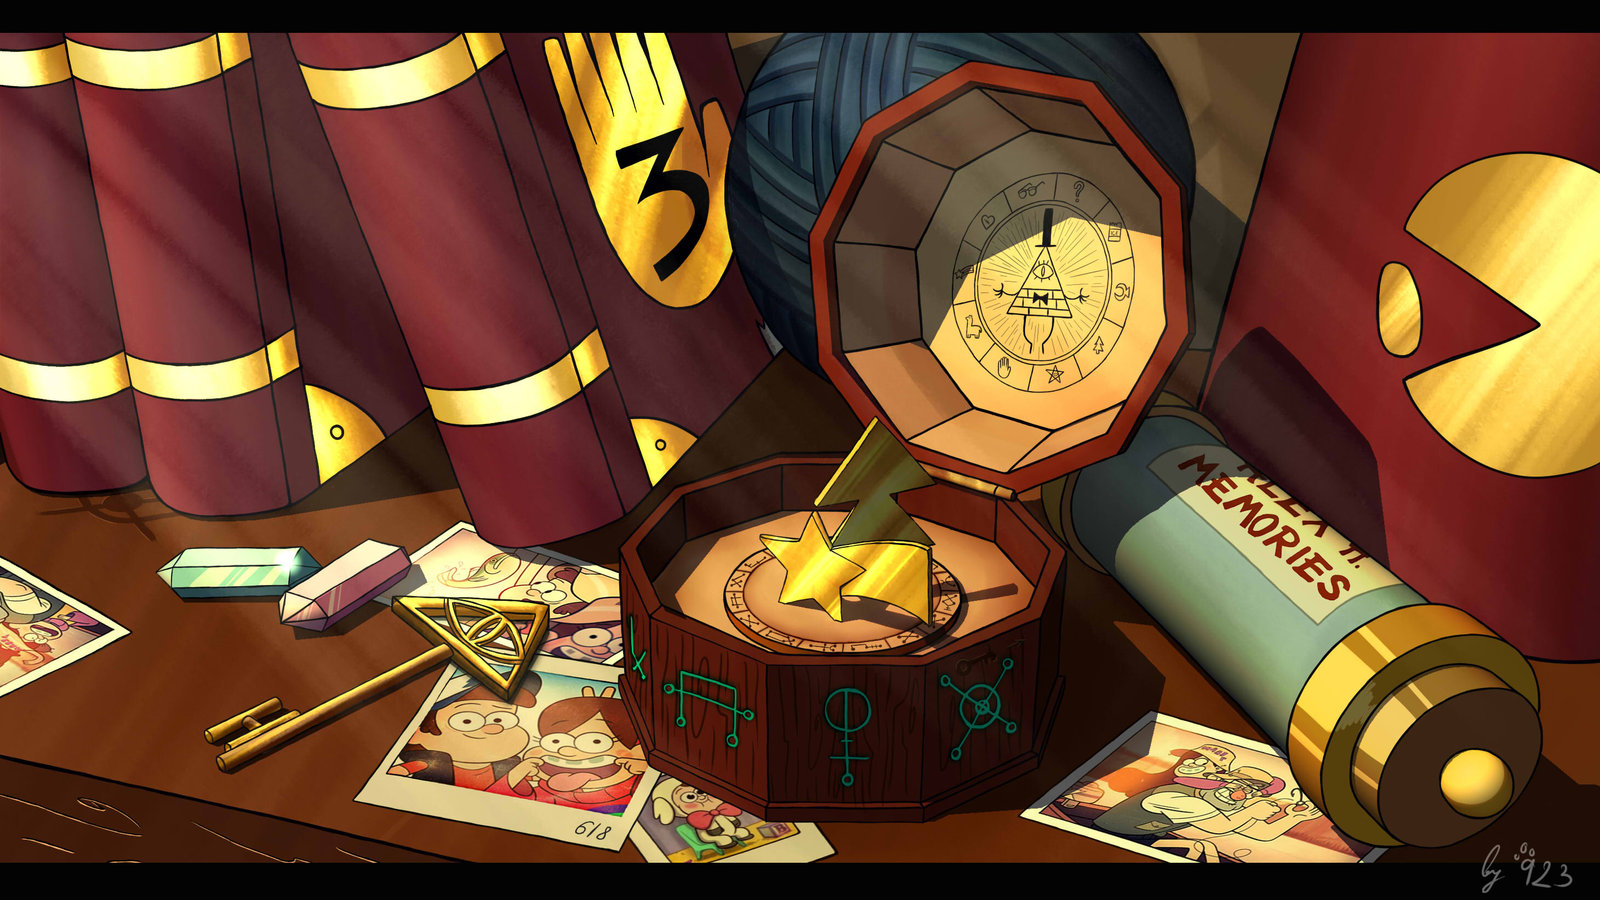 Gravity Falls Wallpaper 1366x768 8tracks Radio Let S Re Mix It Up A Gravity Falls